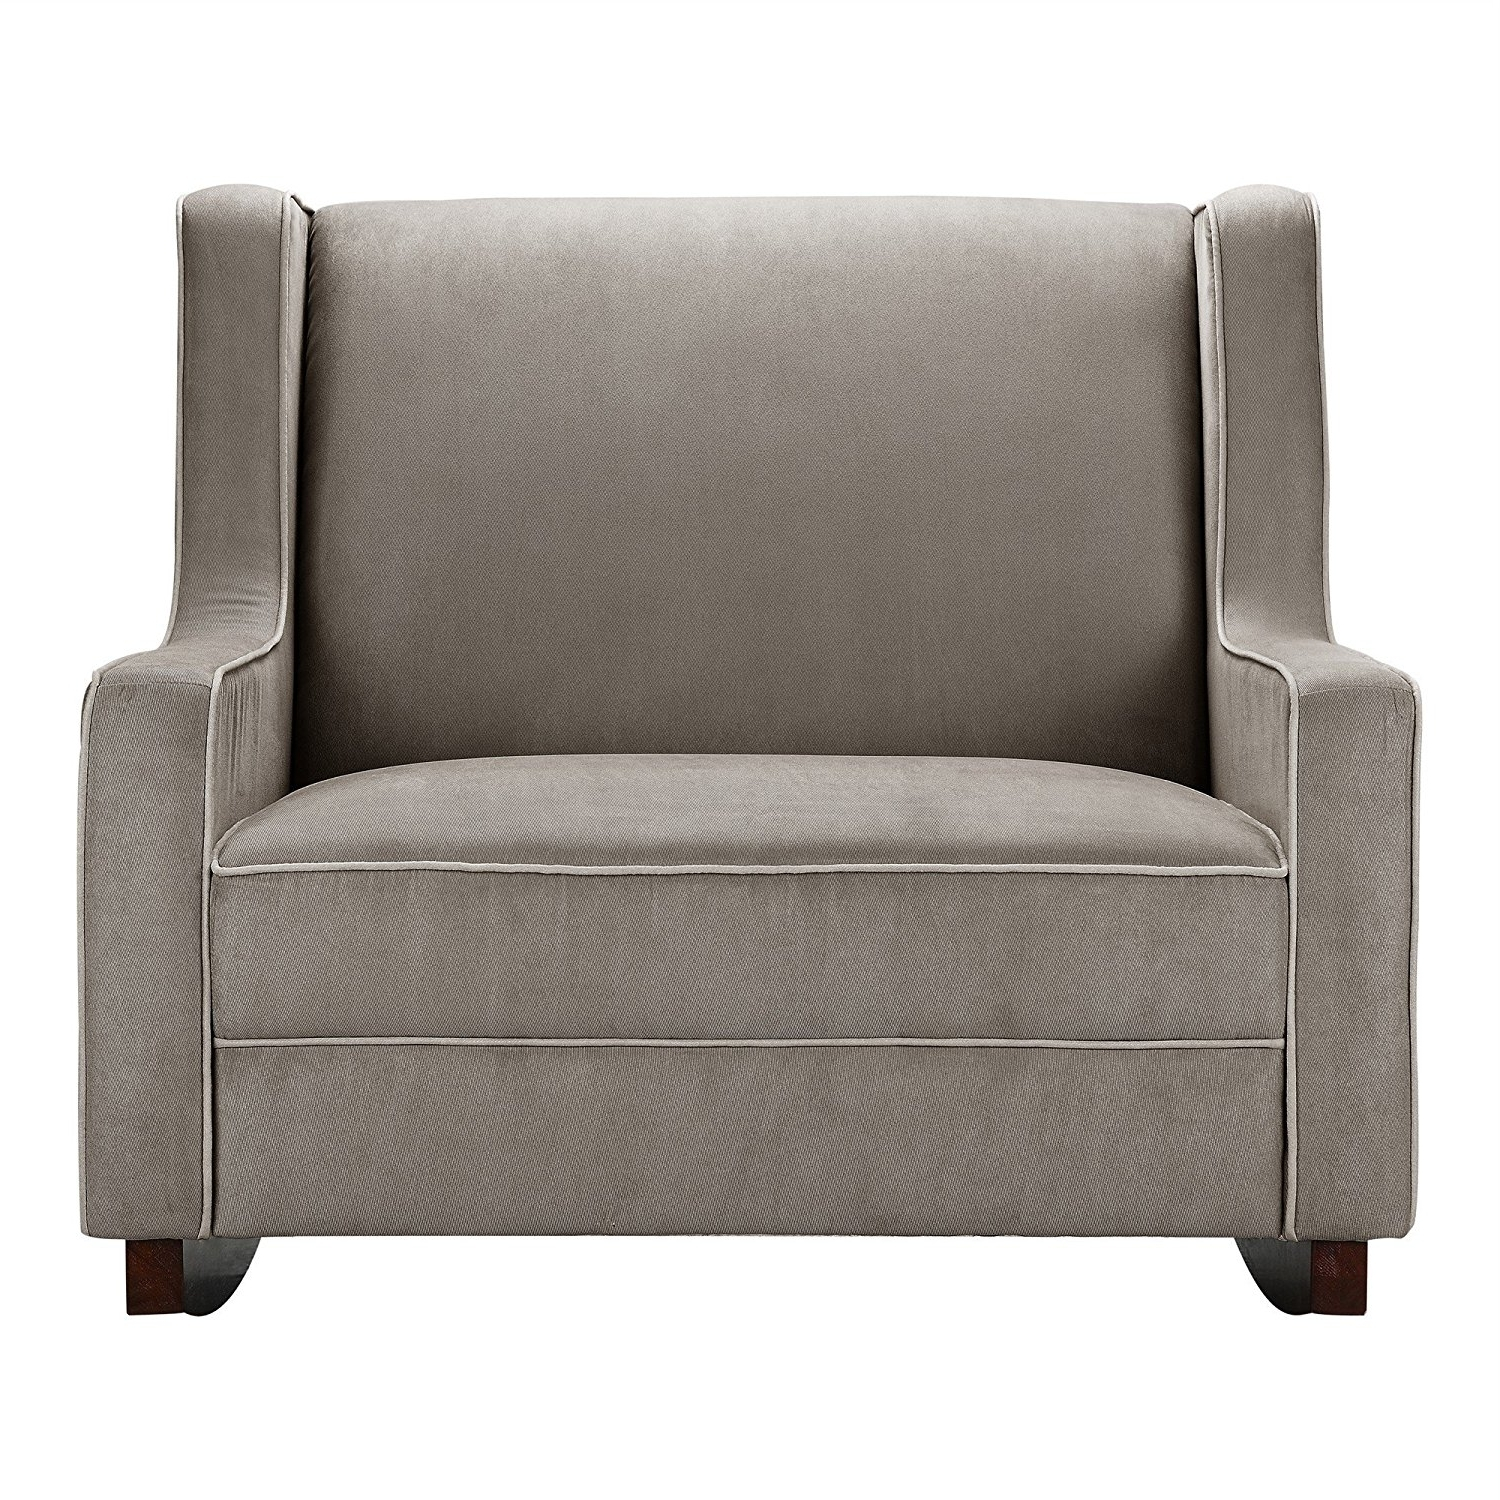 Famous Amazon : Baby Relax Double Rocker, Dark Taupe : Baby Intended For Rocking Sofa Chairs (View 8 of 15)